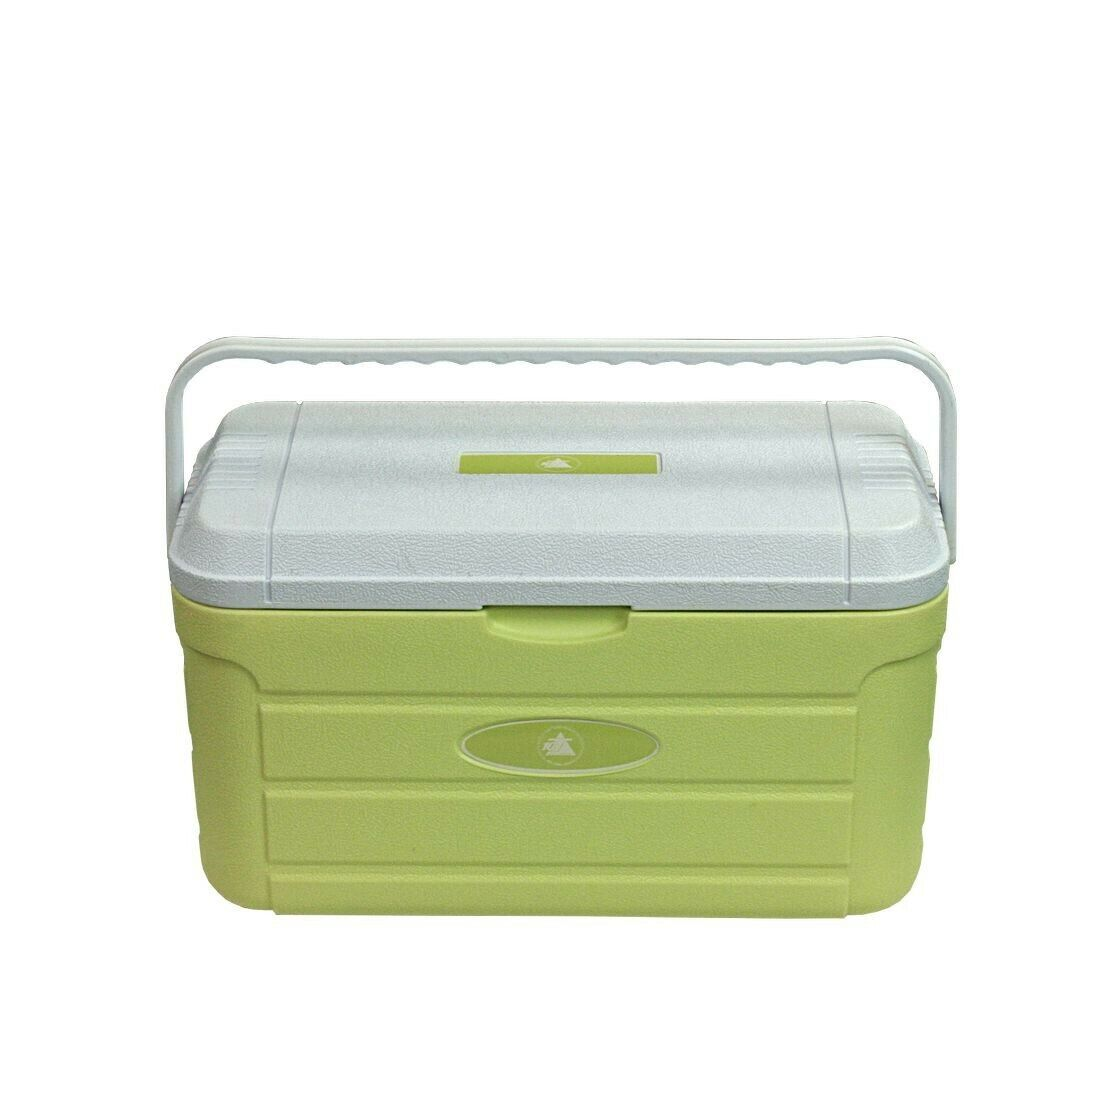 Coolbox Fridgo 20L passive Thermobox PU cooling container insulated box coolbag